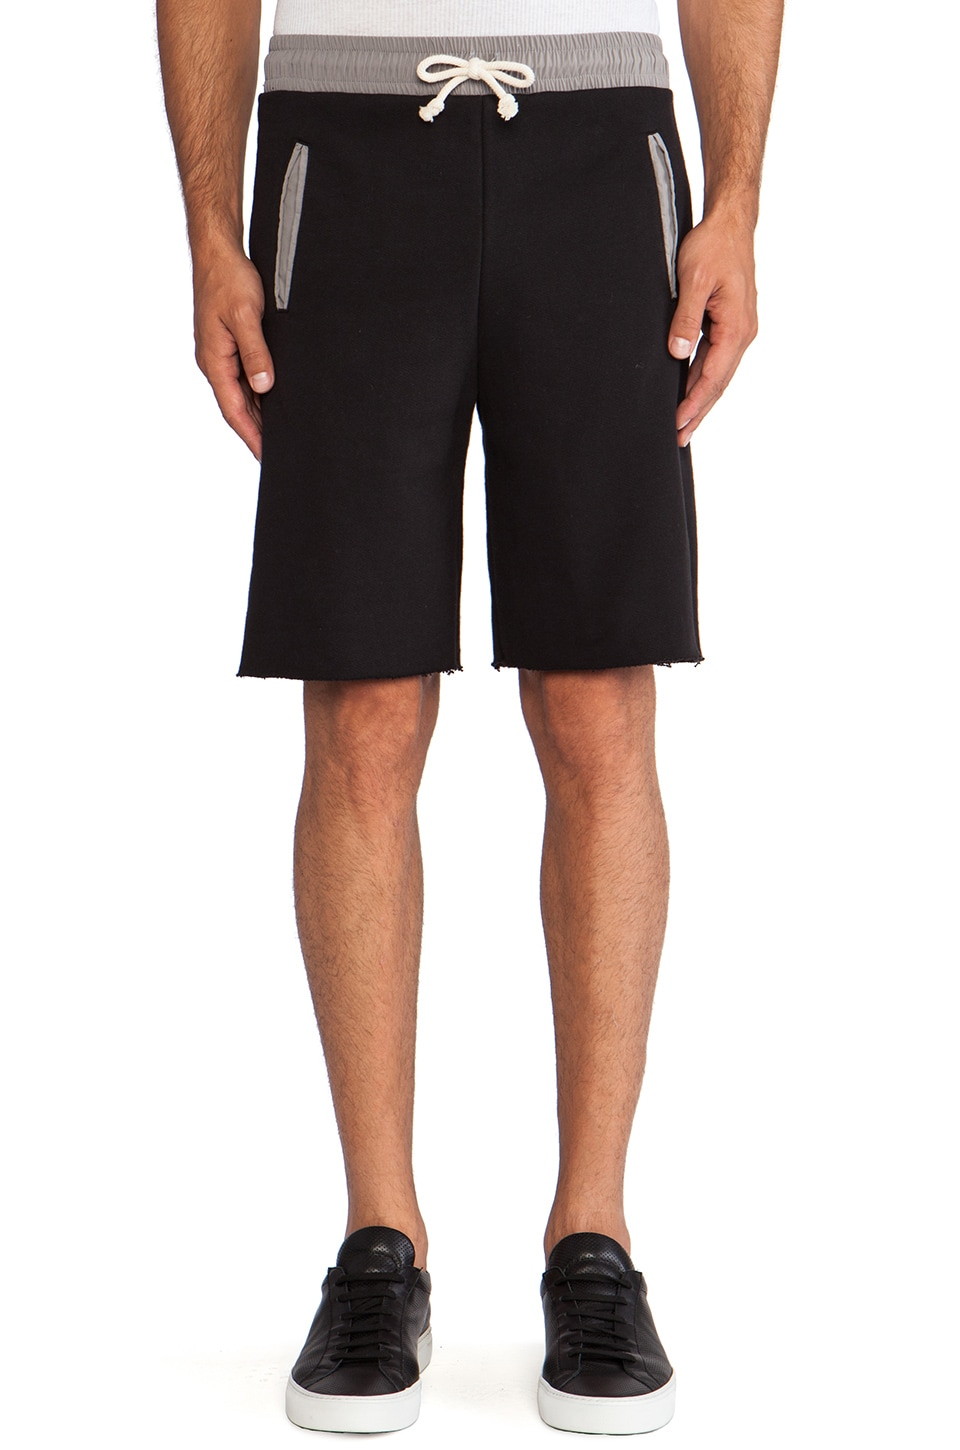 JOHN ELLIOTT Lima Short in Black Duo